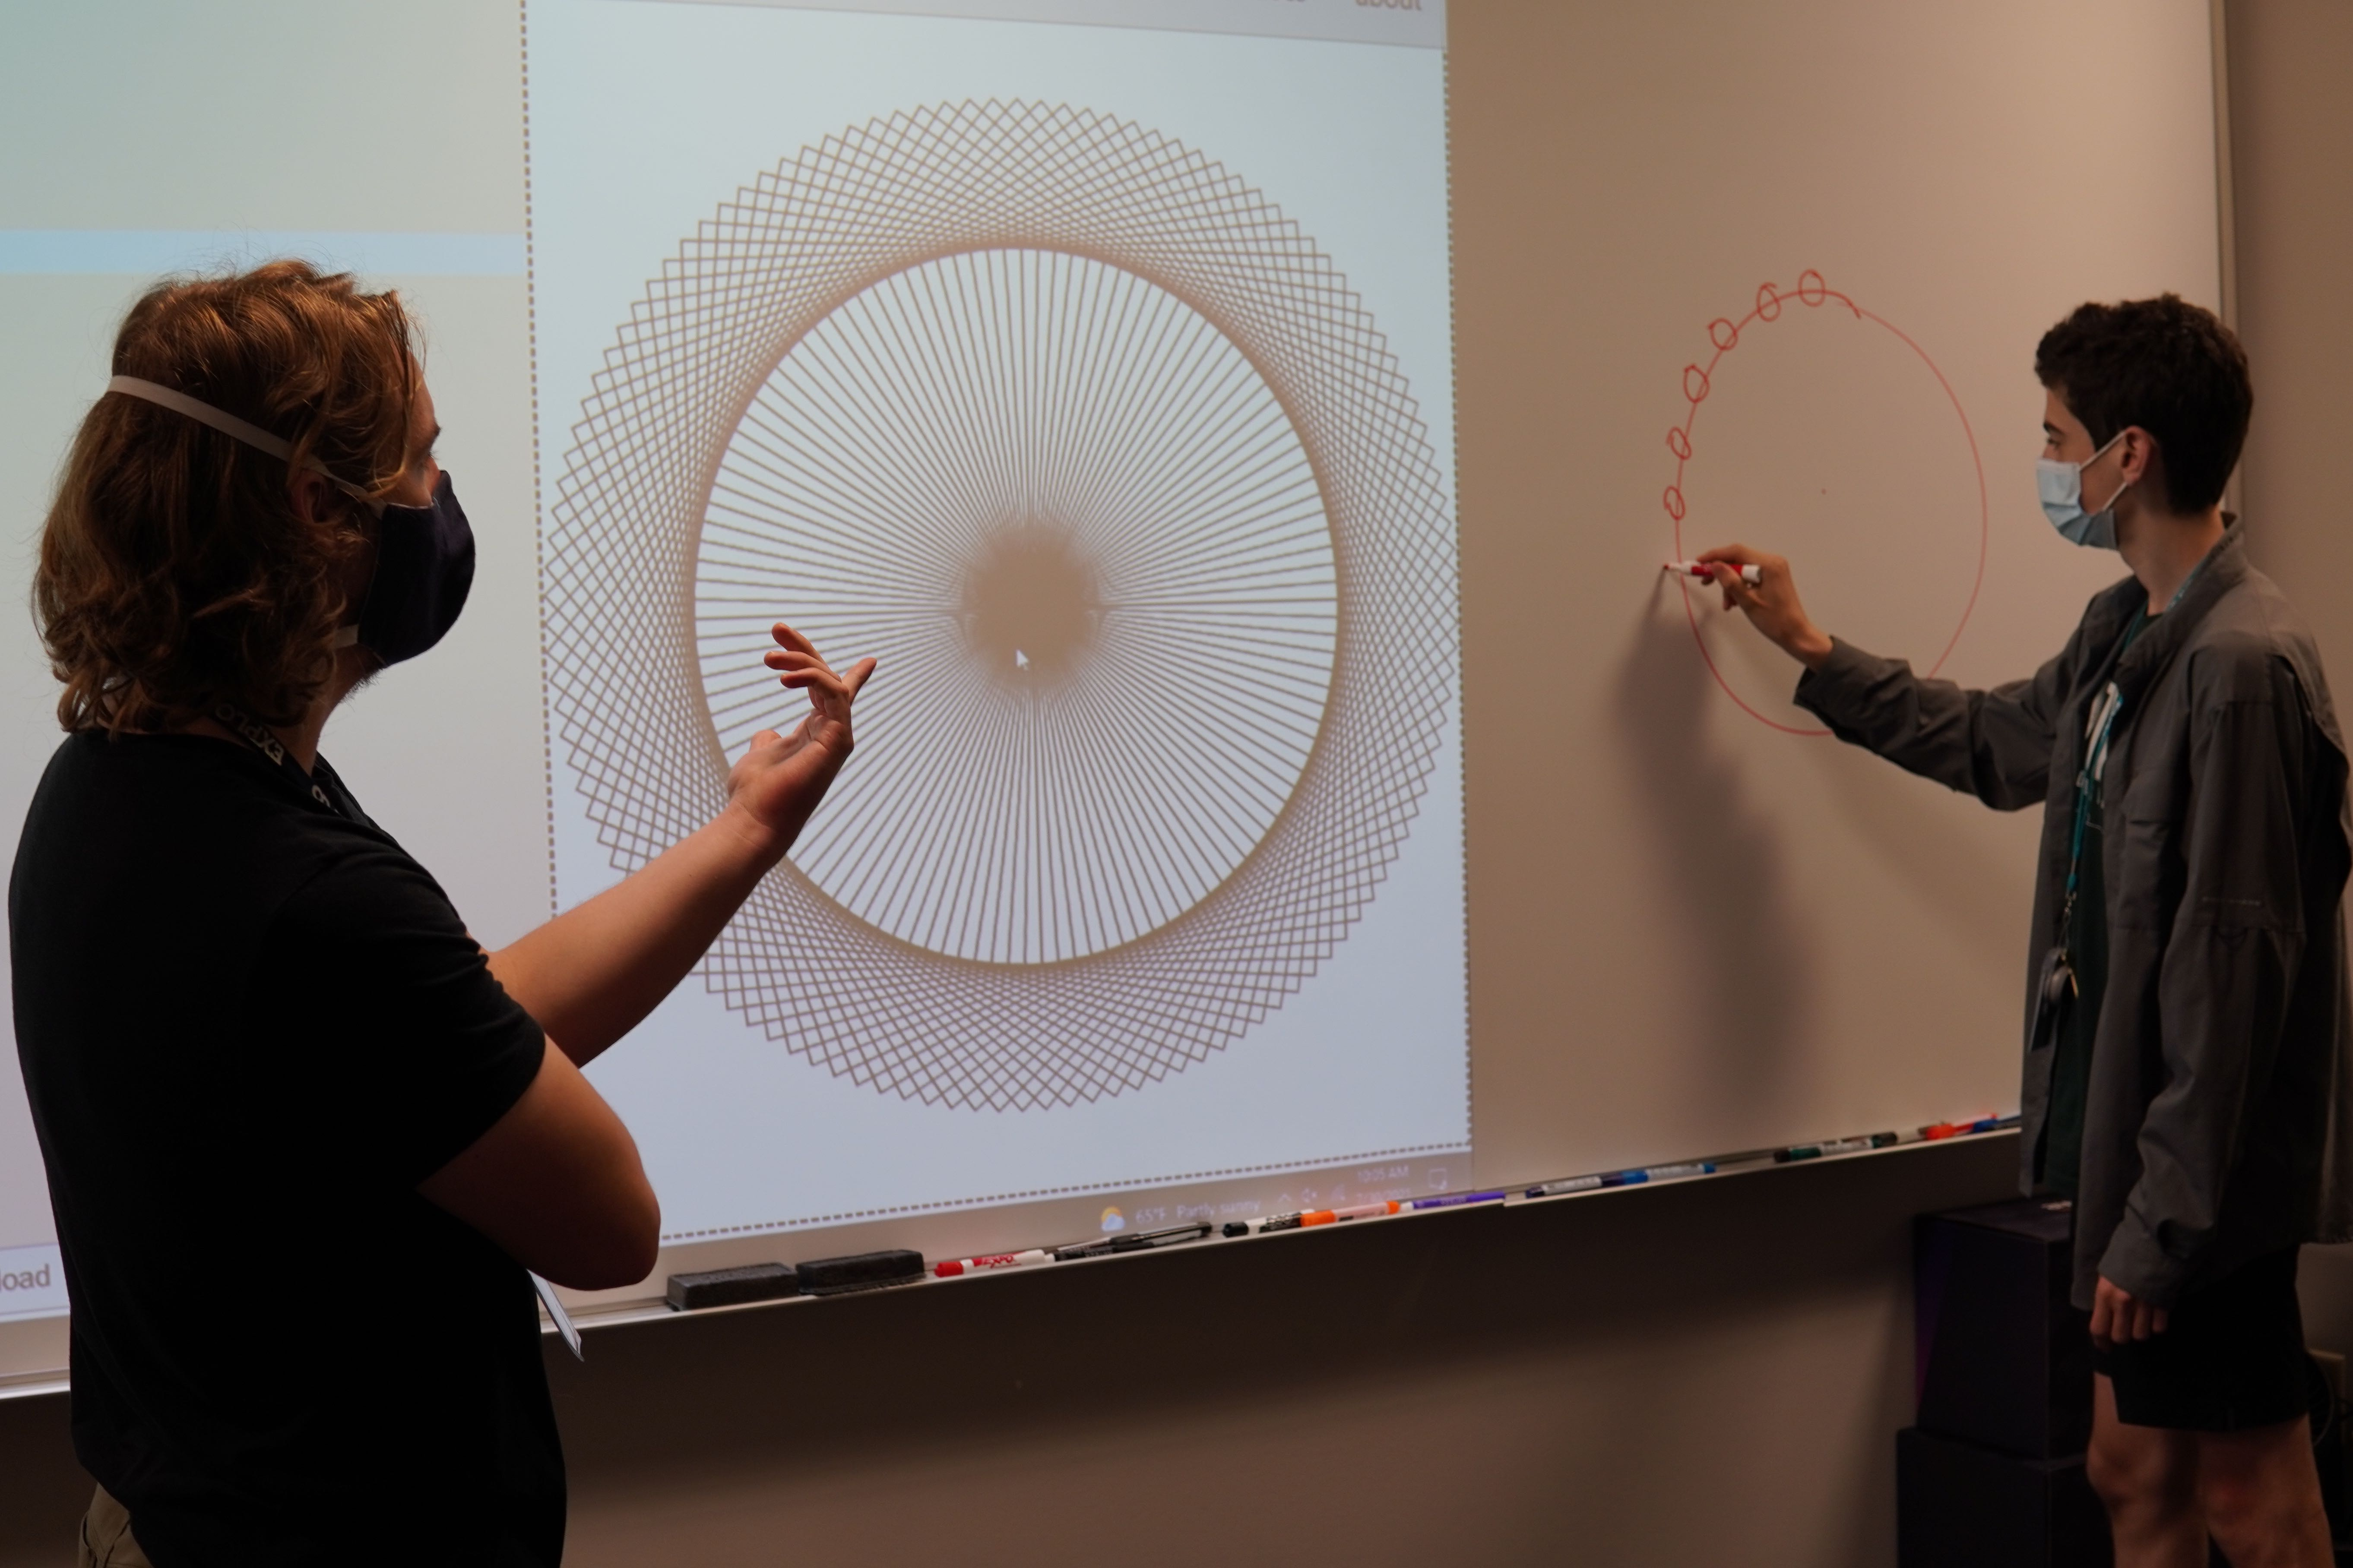 Leo McElroy speaks with a student after they brought their coded shapes on the projector. The student is drawing the shape they are attempting to make on the white board.